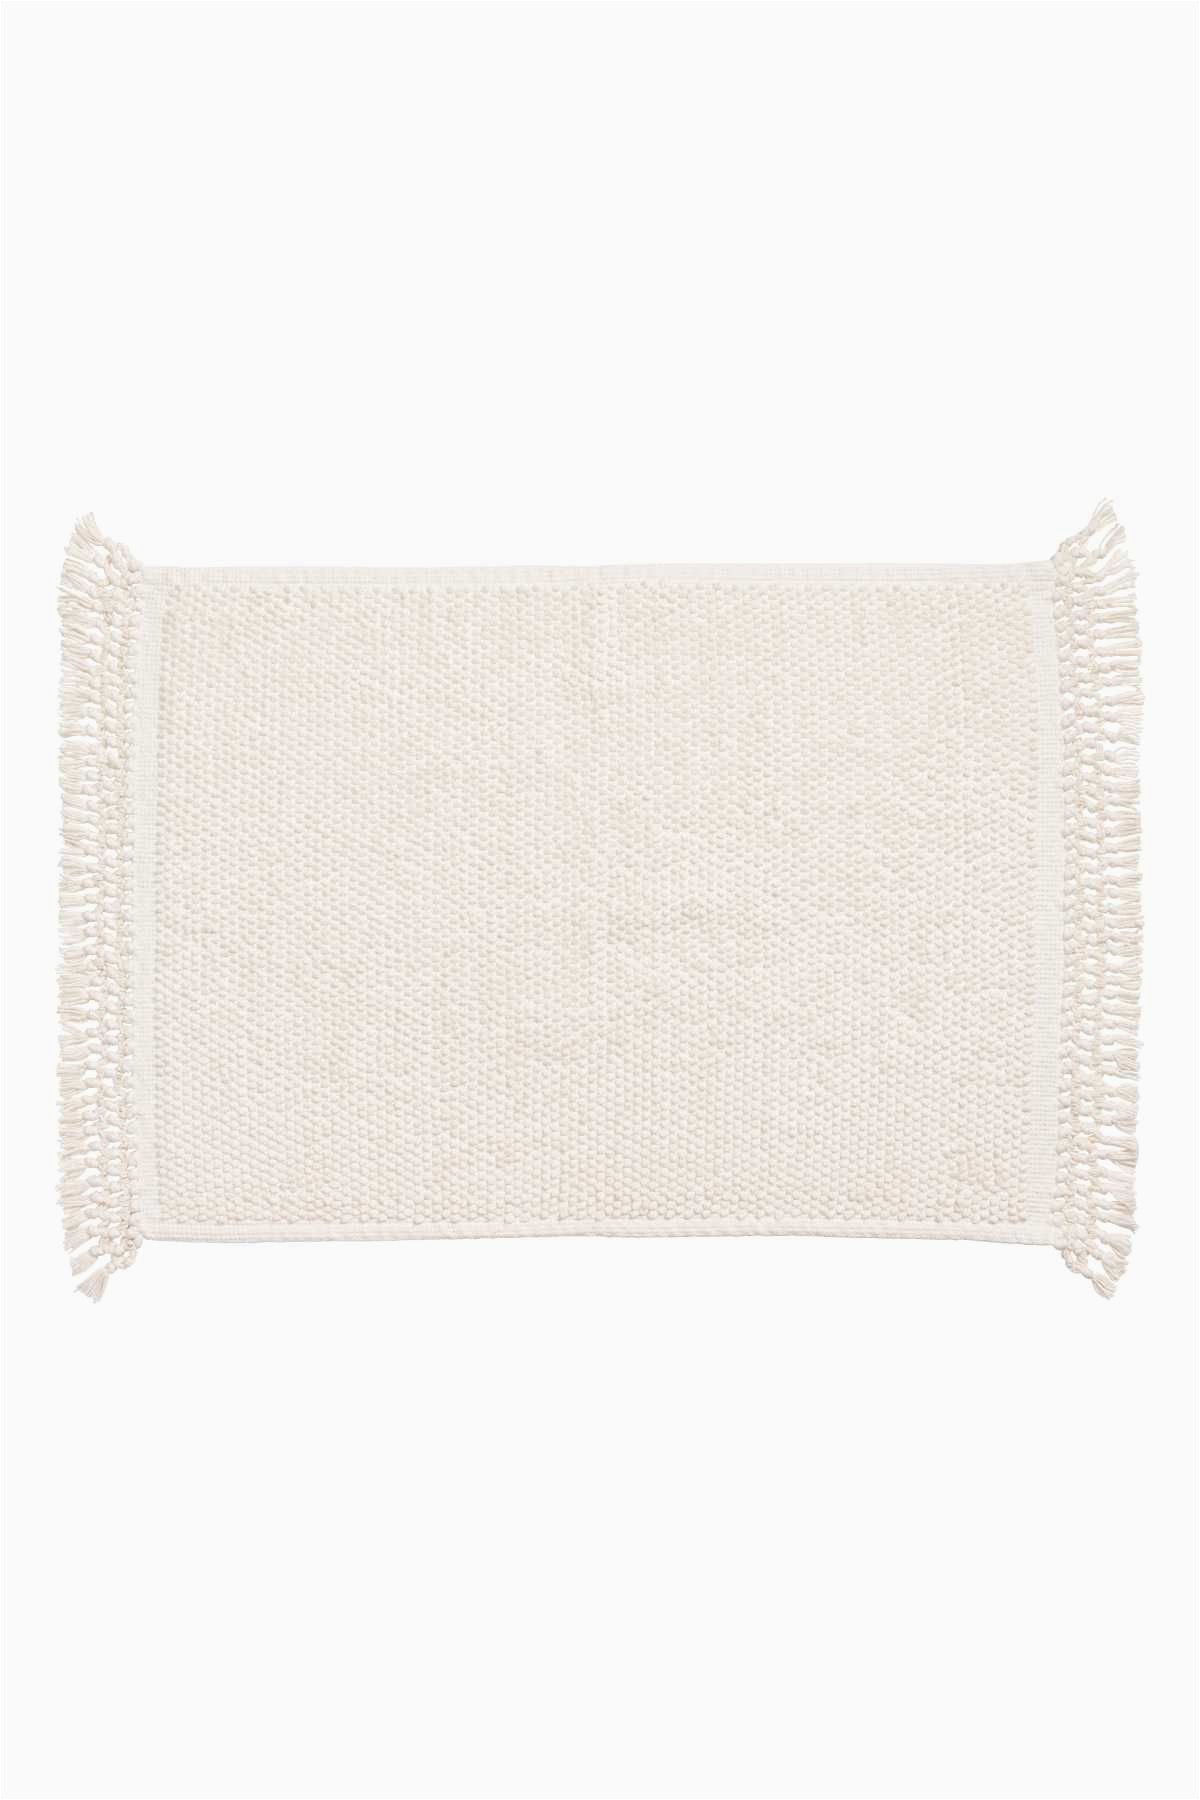 White Bath Rugs Cotton White Bath Mat In Woven Textured Cotton Fabric Knotted